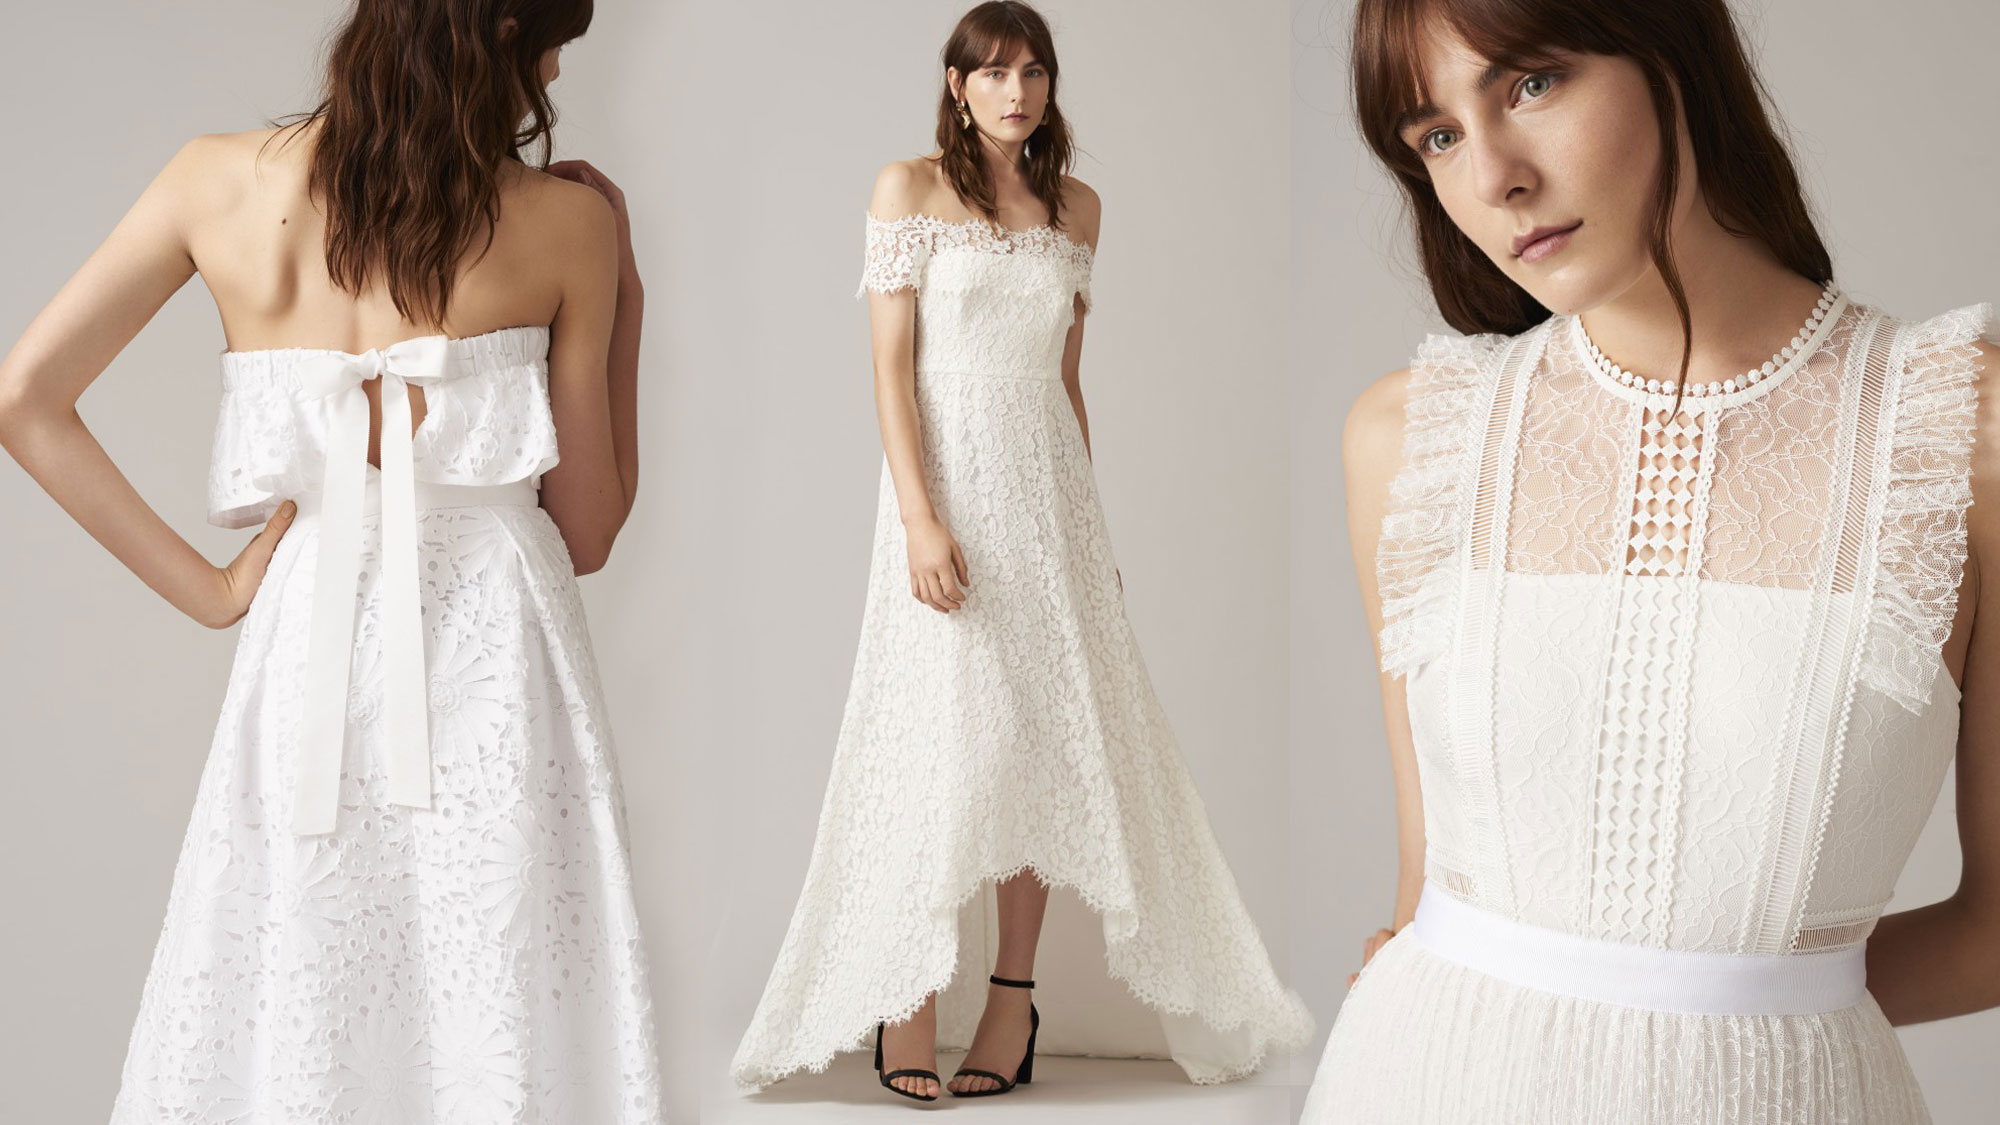 Whistles Wedding: The brand new high street bridal collection